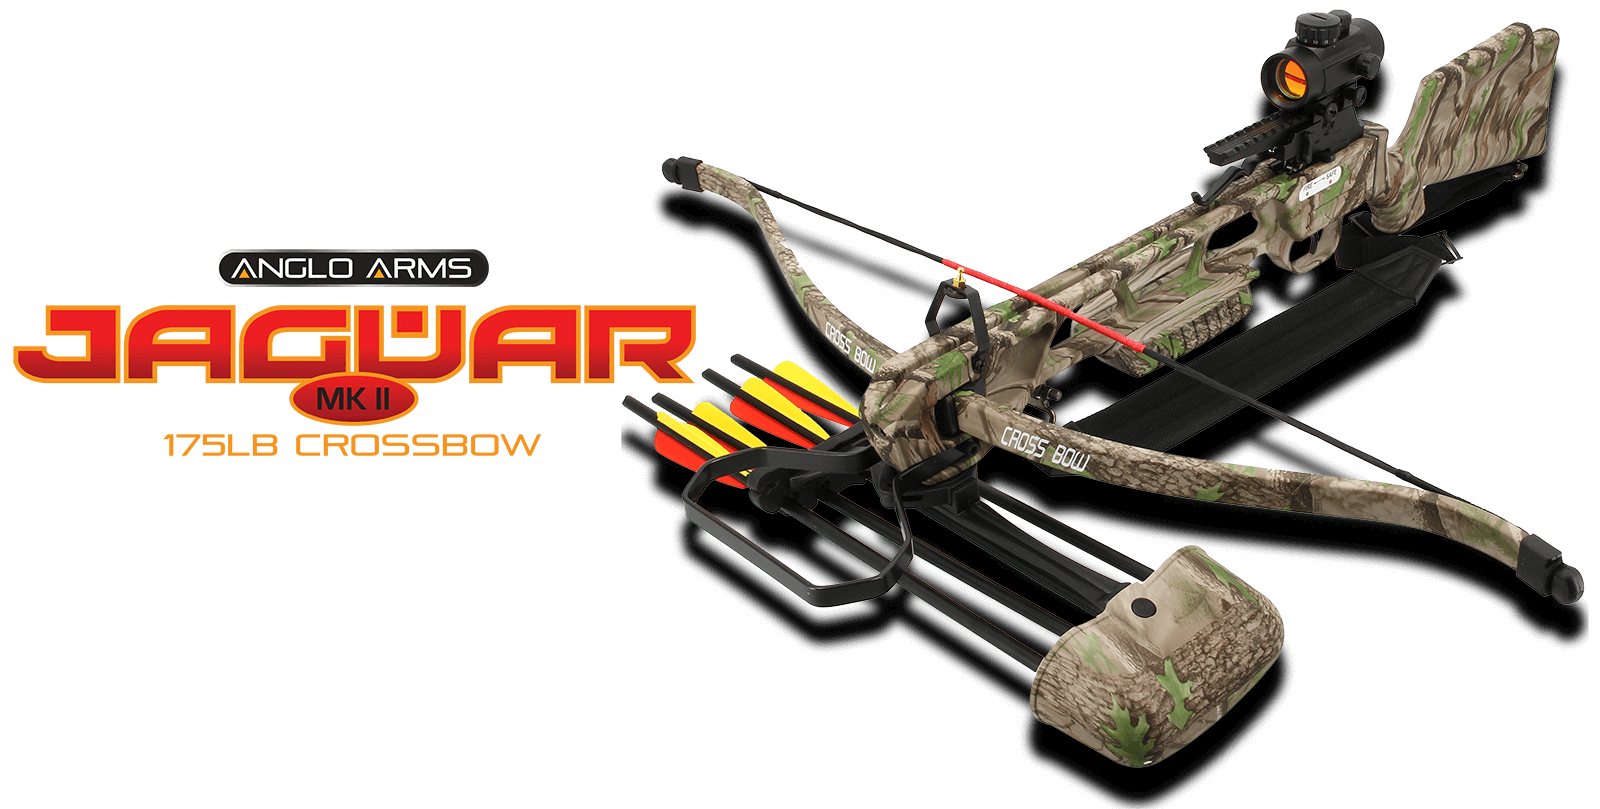 anglo arms recurve crossbows